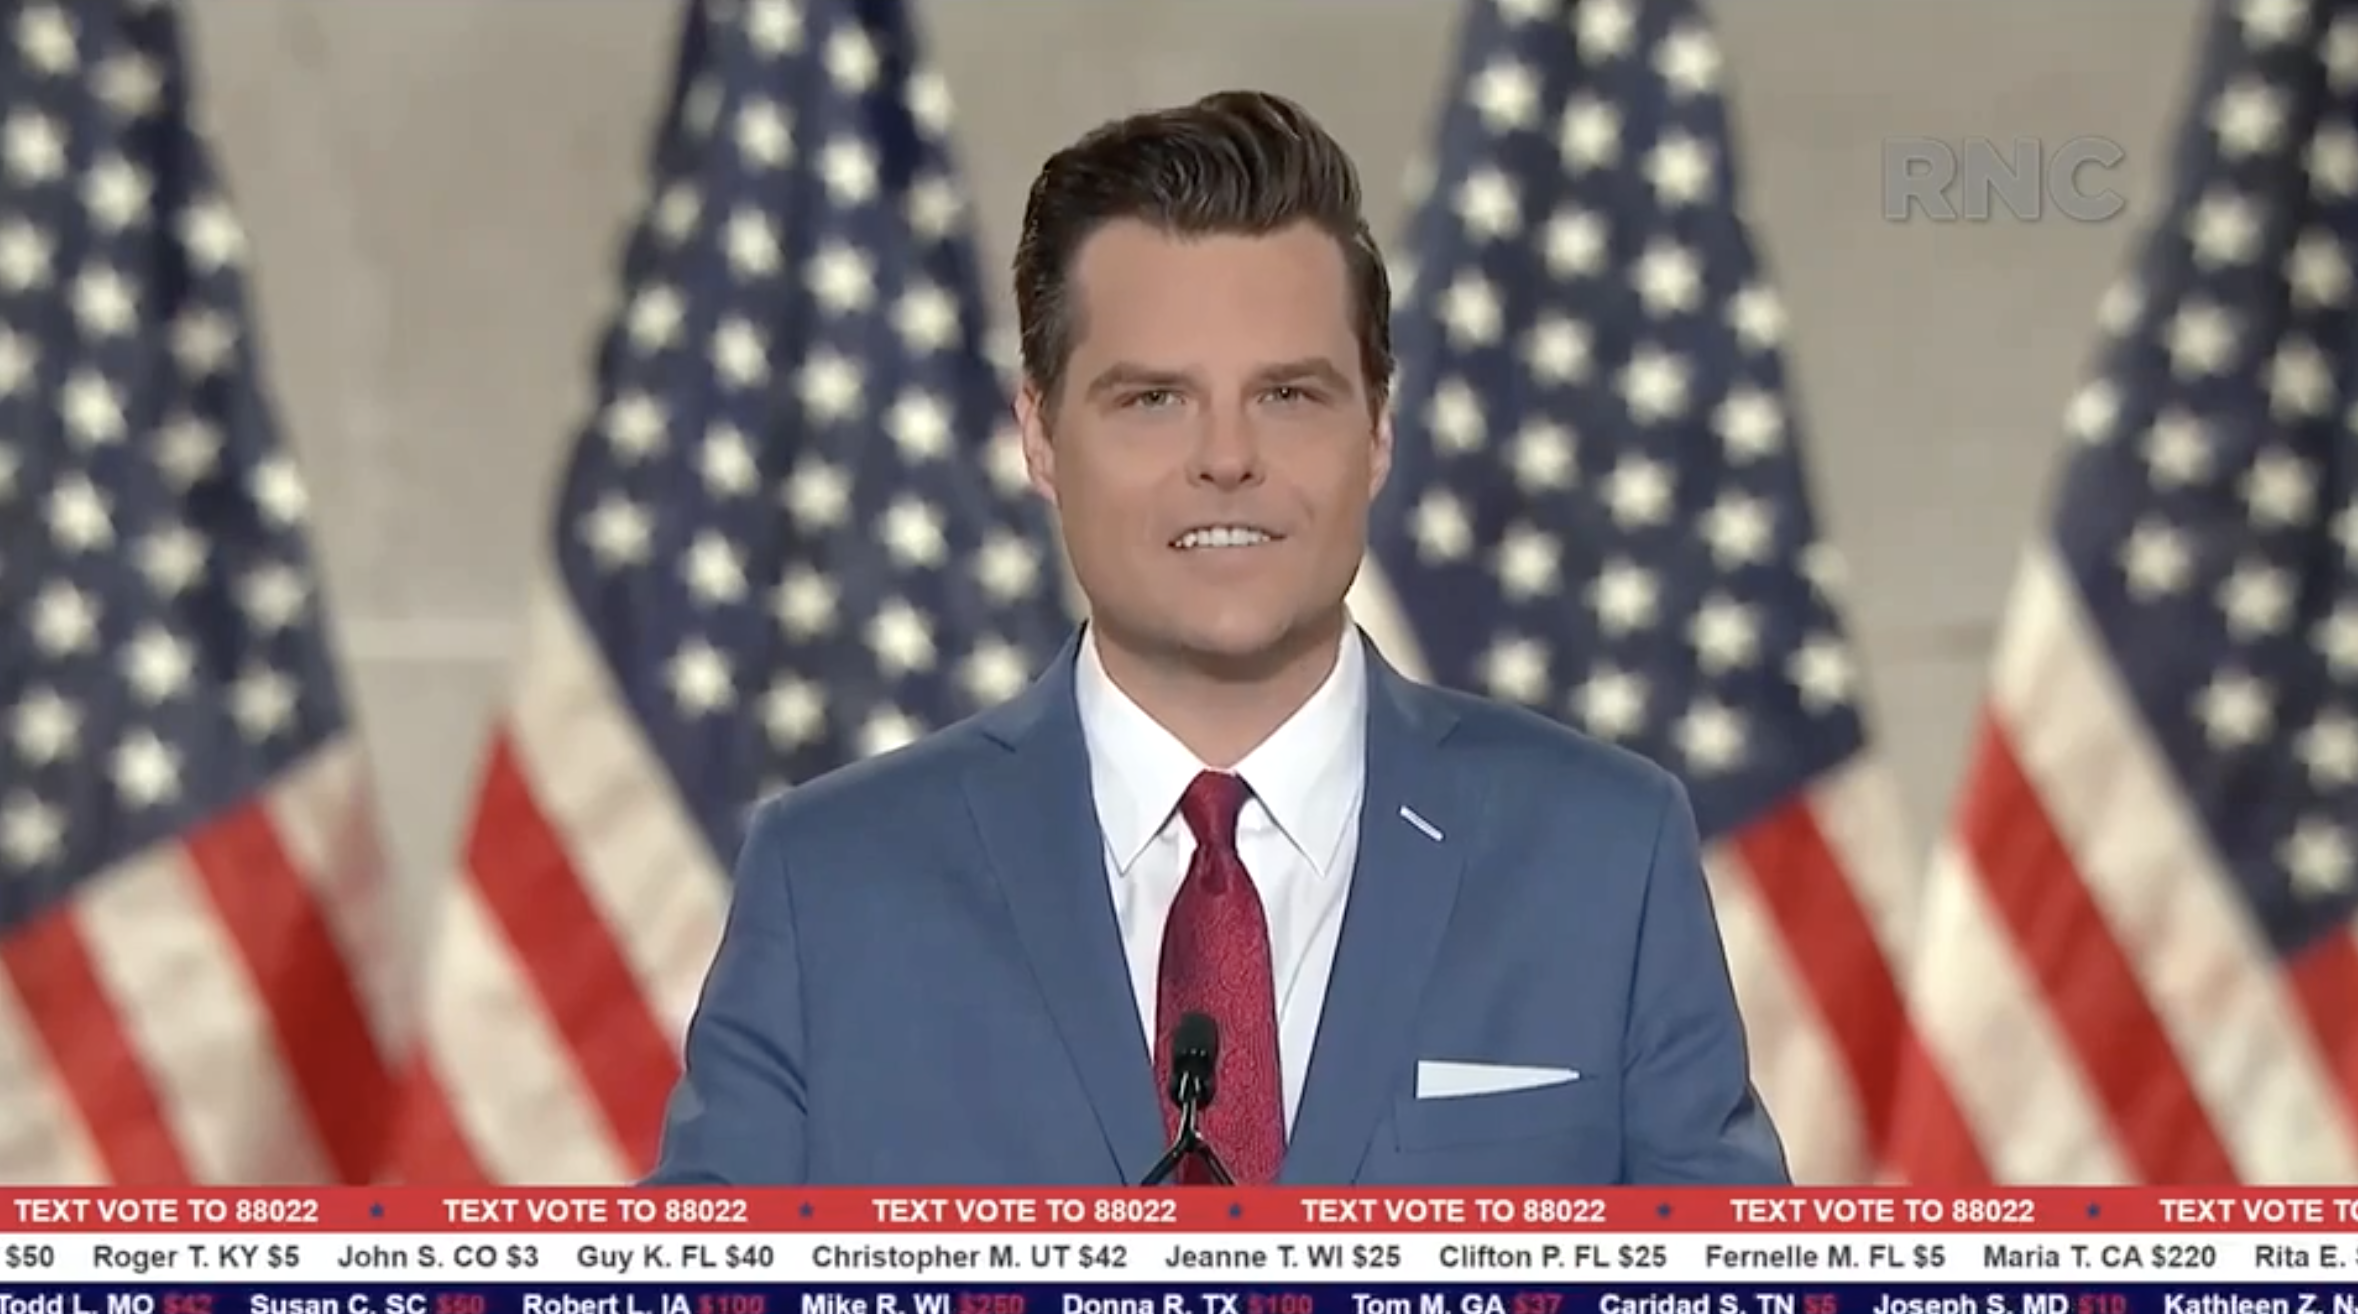 Gaetz: We Must Fight To Save America Now, Or We May Lose Her Forever